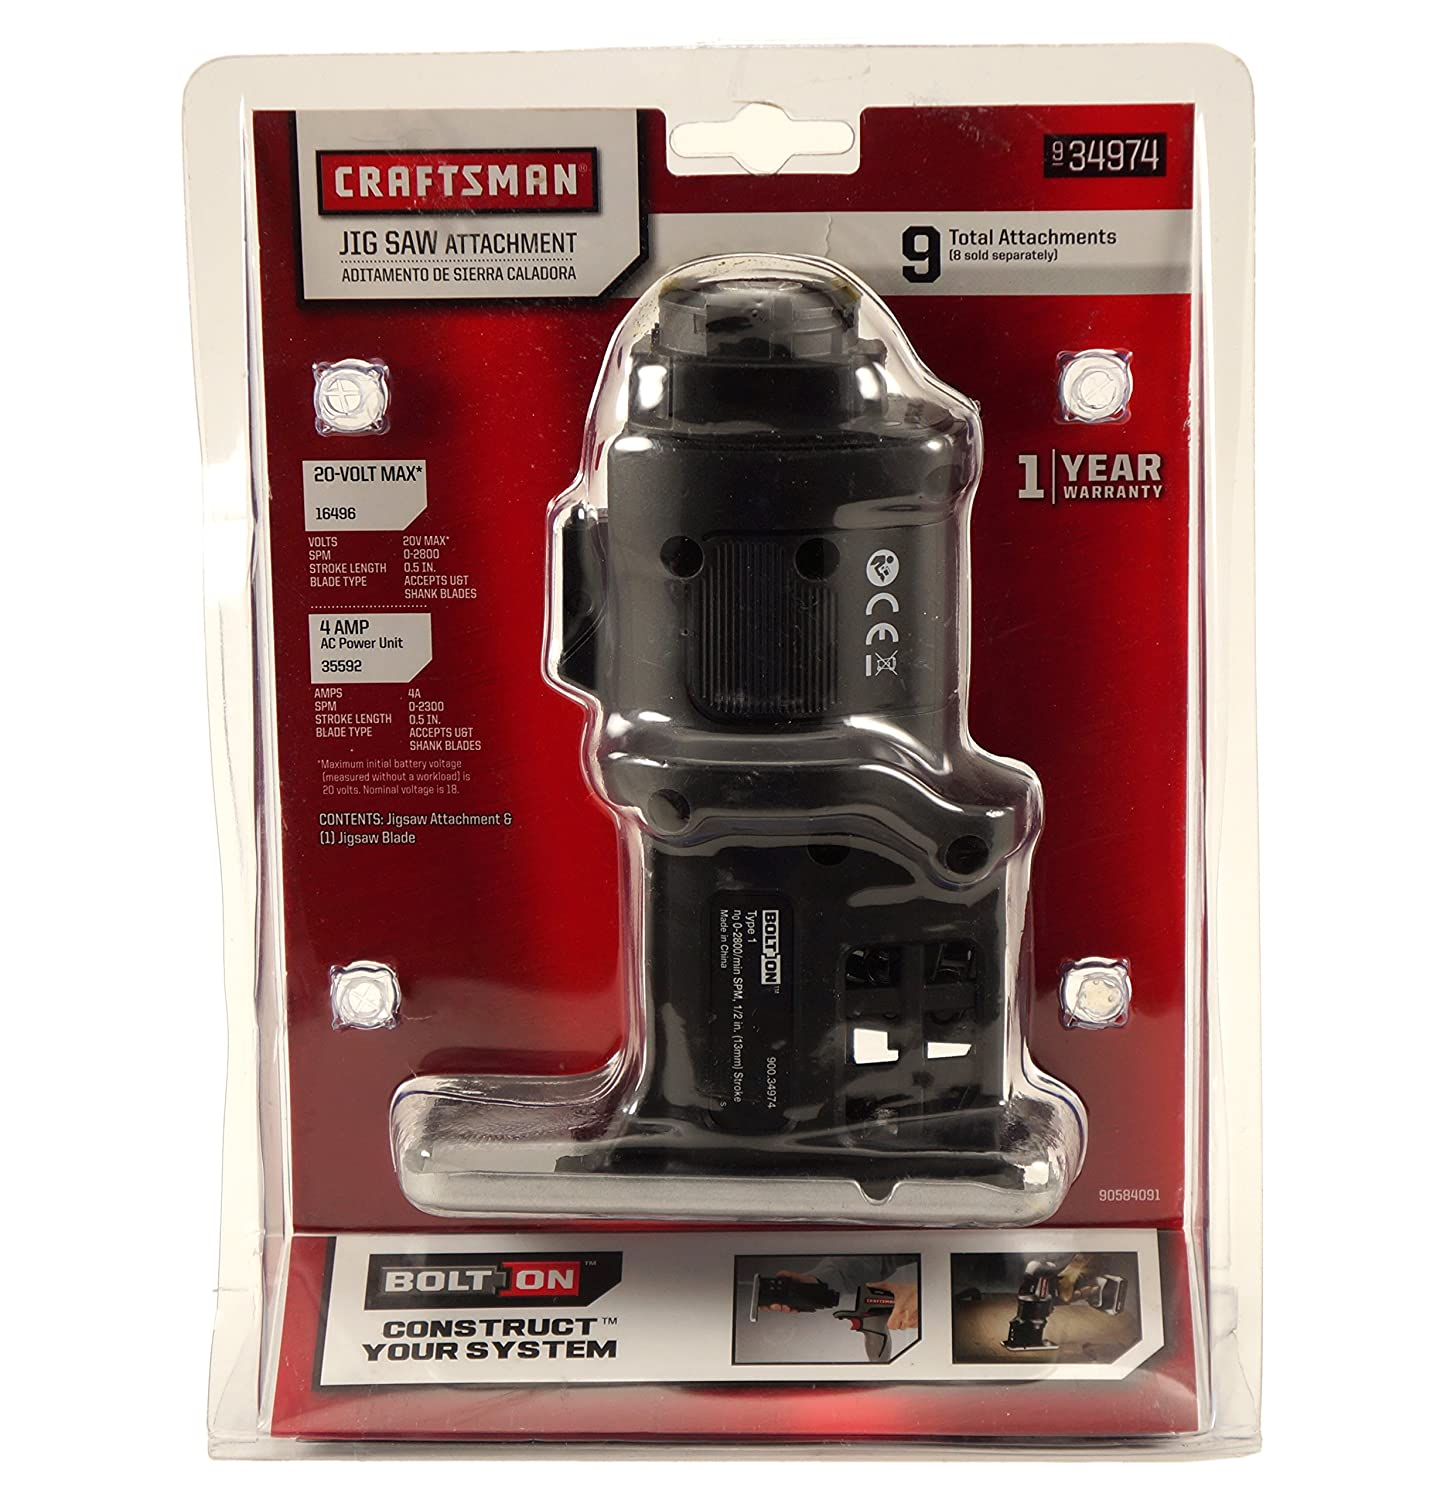 Craftsman bolt on jig saw attachment 9 34974 cmcmtjs amazon greentooth Images